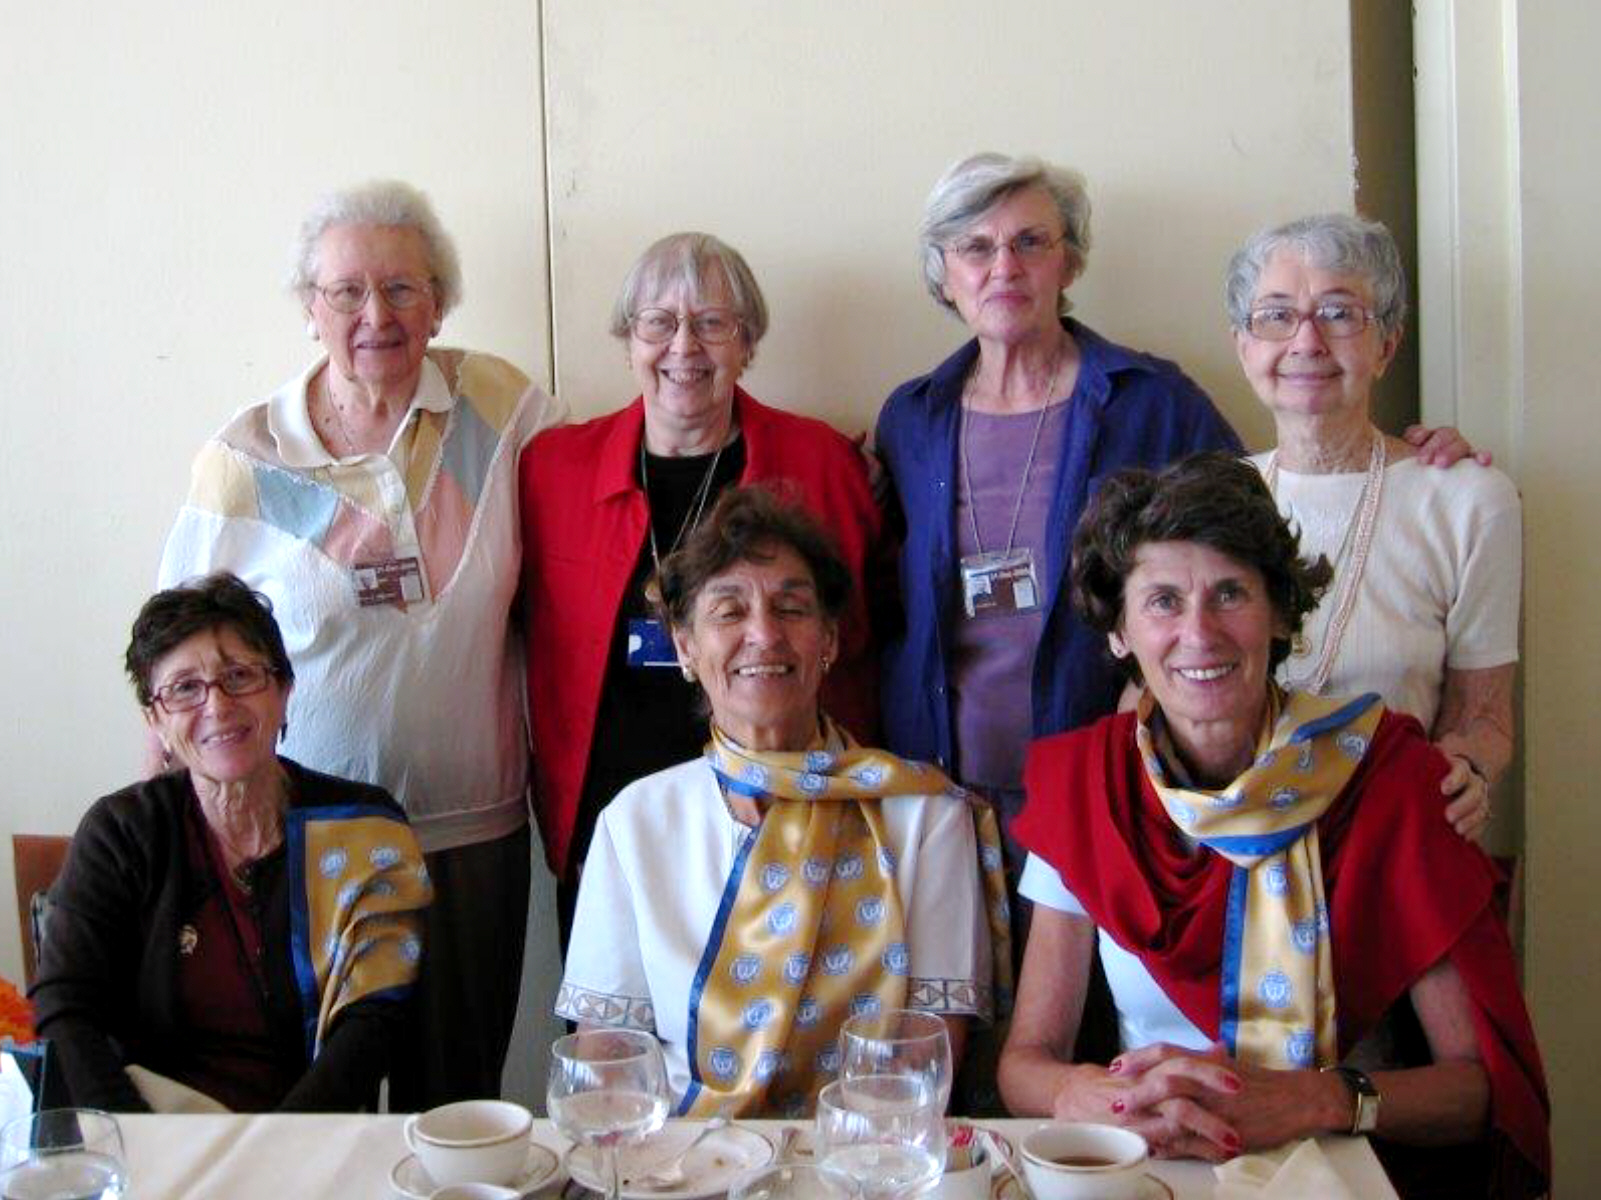 Luncheon UN August 2005 SINY-Carolyn, Lois, Cathy, and guests.jpg